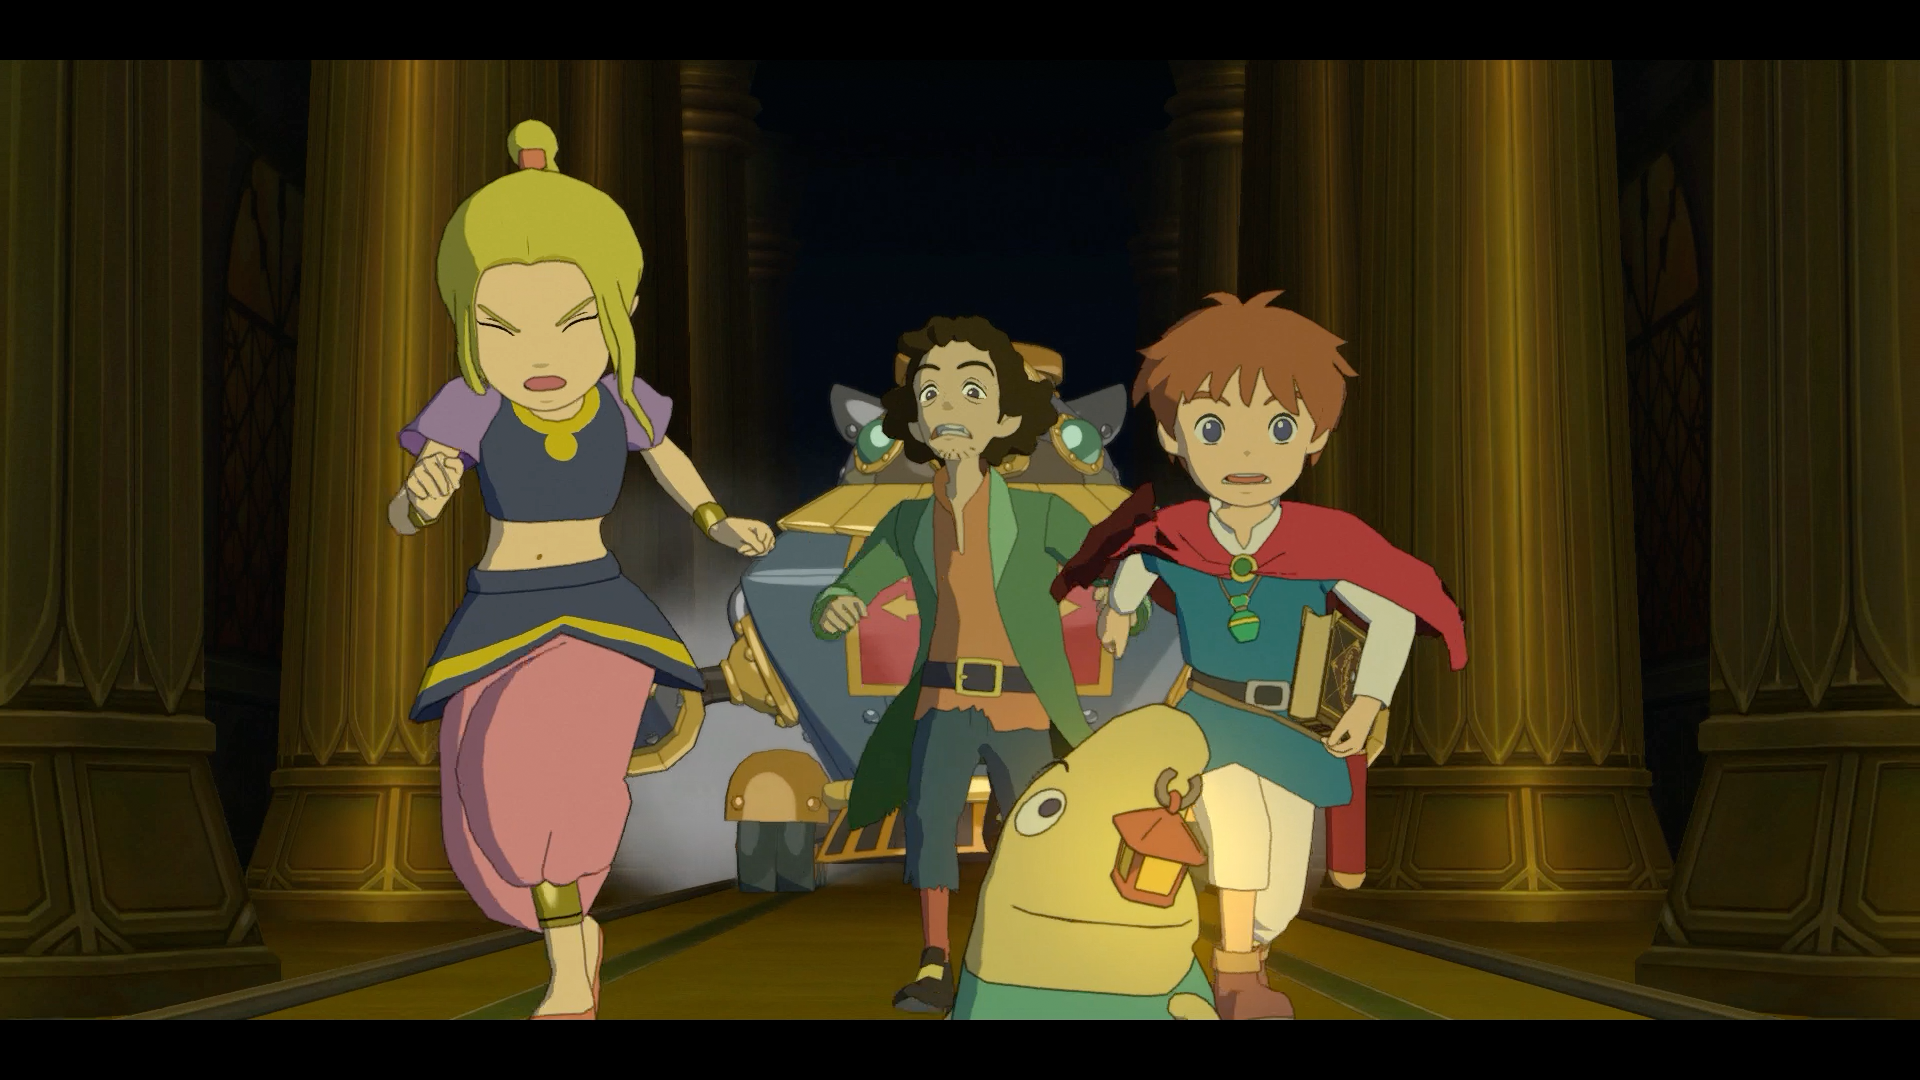 Original Ni No Kuni Coming To Switch 20th September And Is 720p/30fps